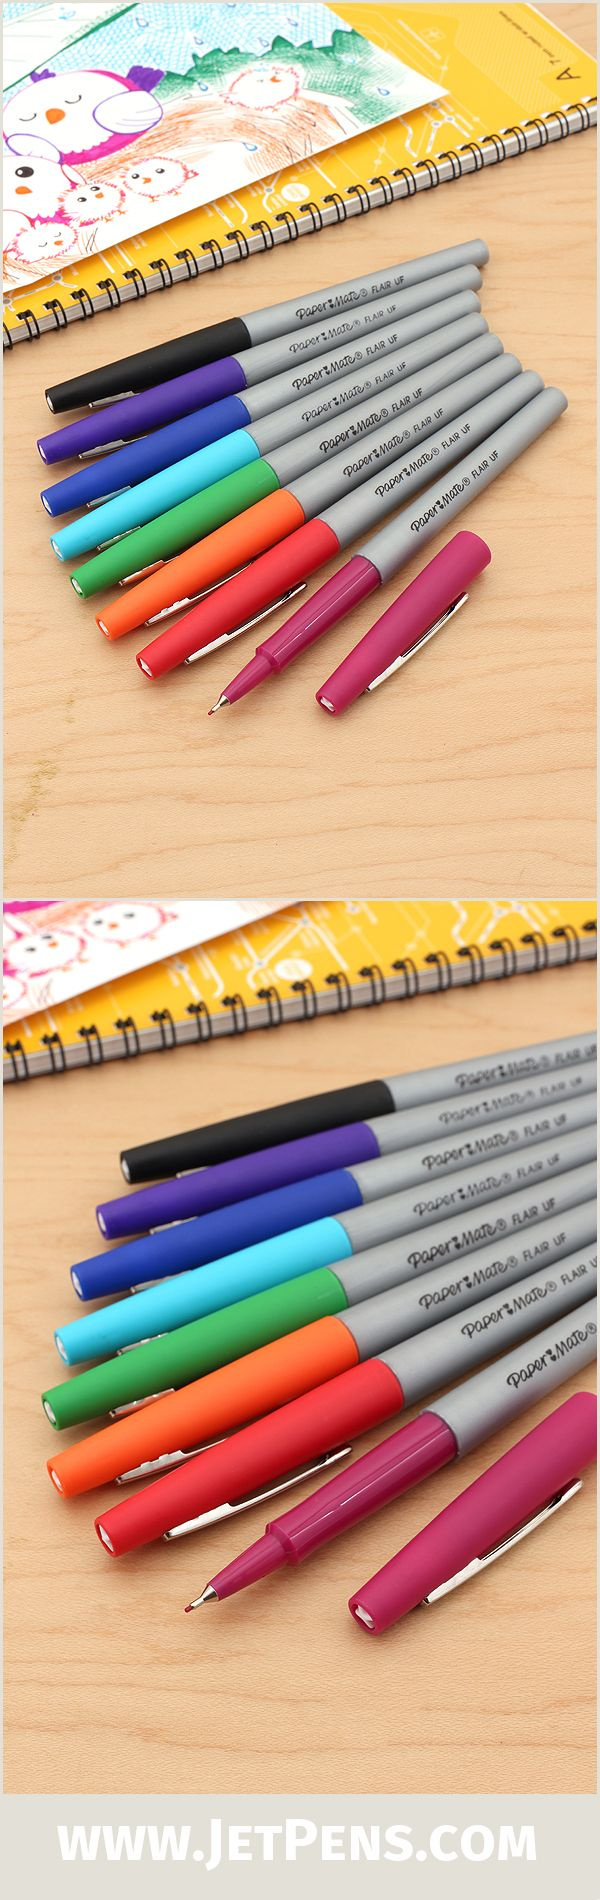 The classic Paper Mate Flair now comes in an extra-fine, metal-reinforced tip size for precise writing and coloring.